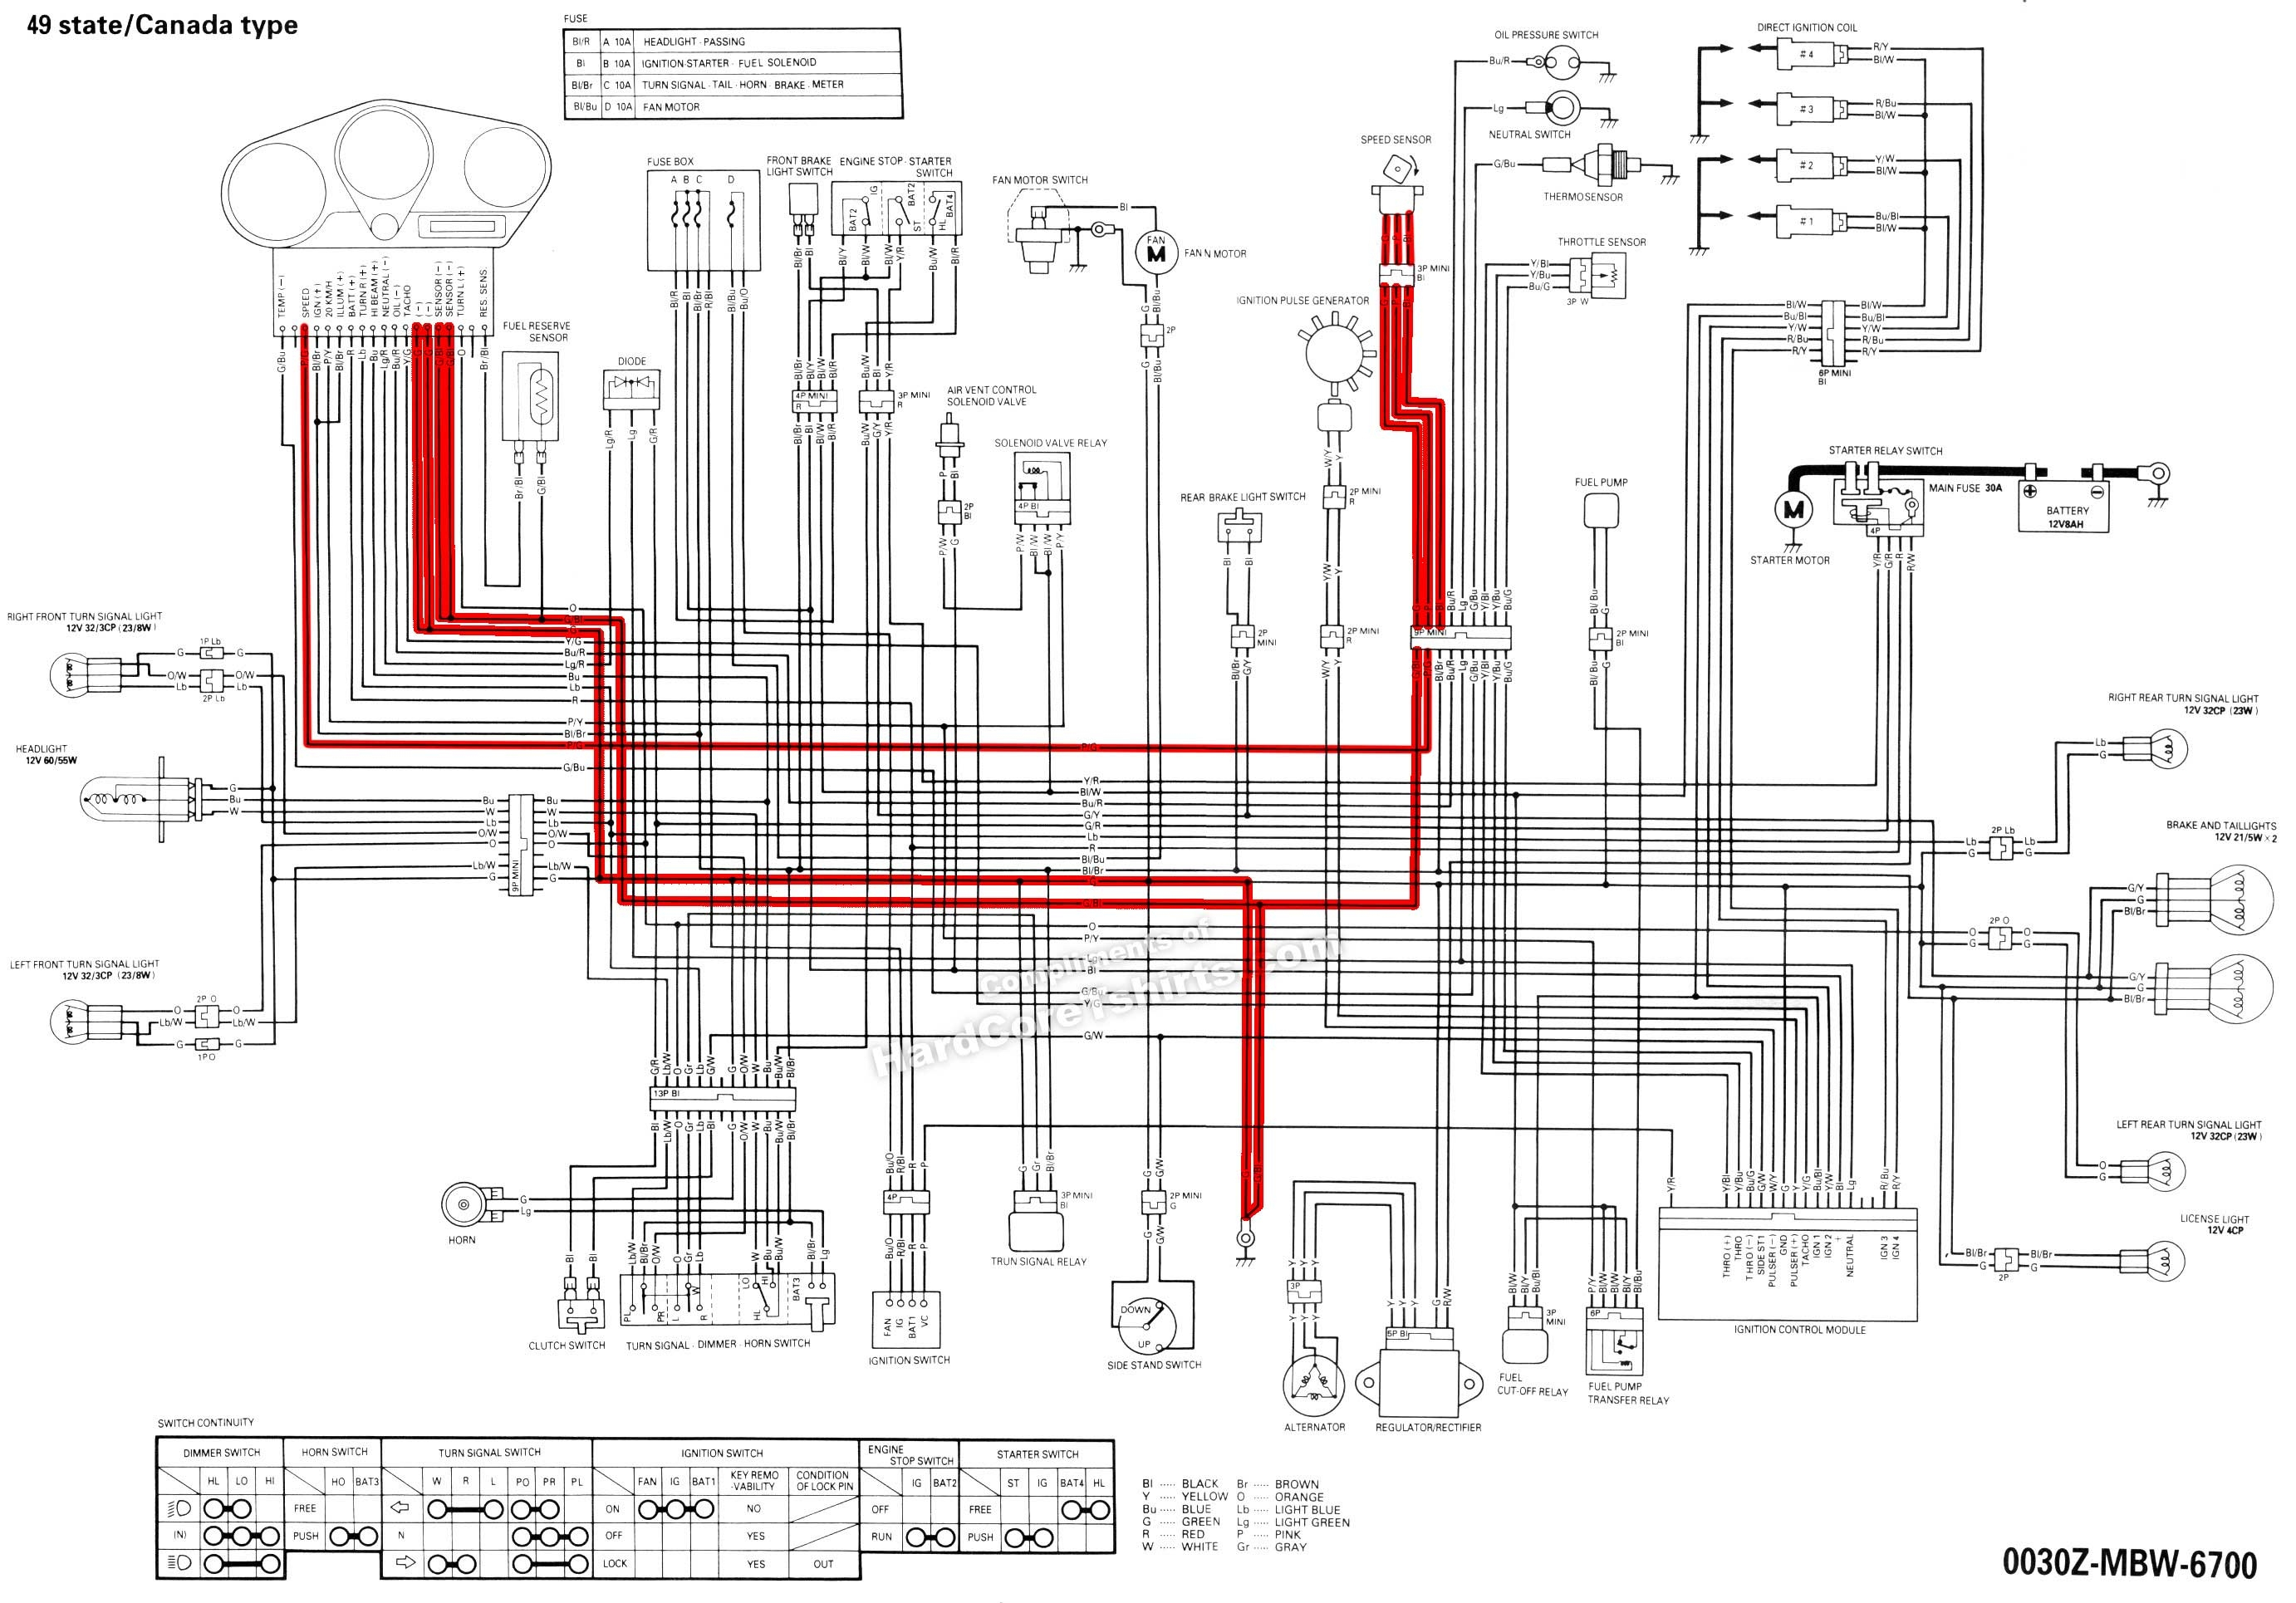 2006 honda cbr600rr wiring diagram Collection-2003 cbr600rr wiring diagram Download 2004 cbr 1000 wire diagram wiring diagram motorcycle ignition wiring 8-l